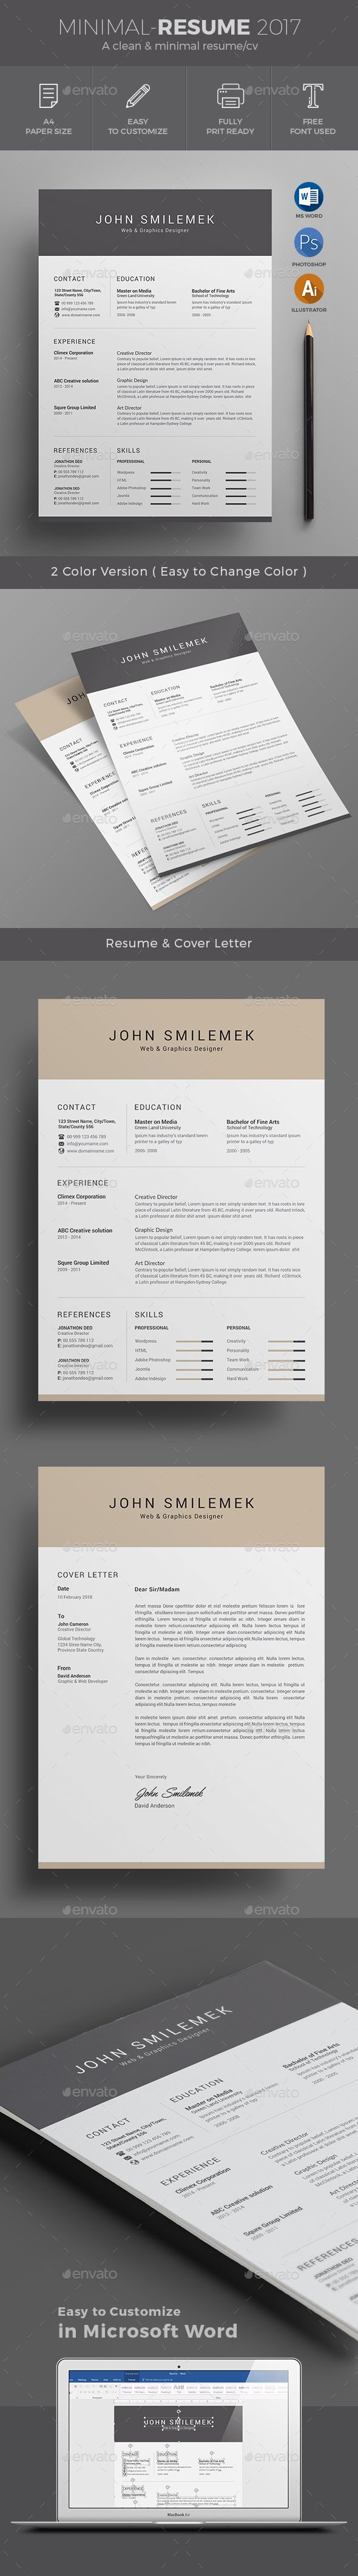 15 best CW_cv images on Pinterest | Resume templates, Resume and ...